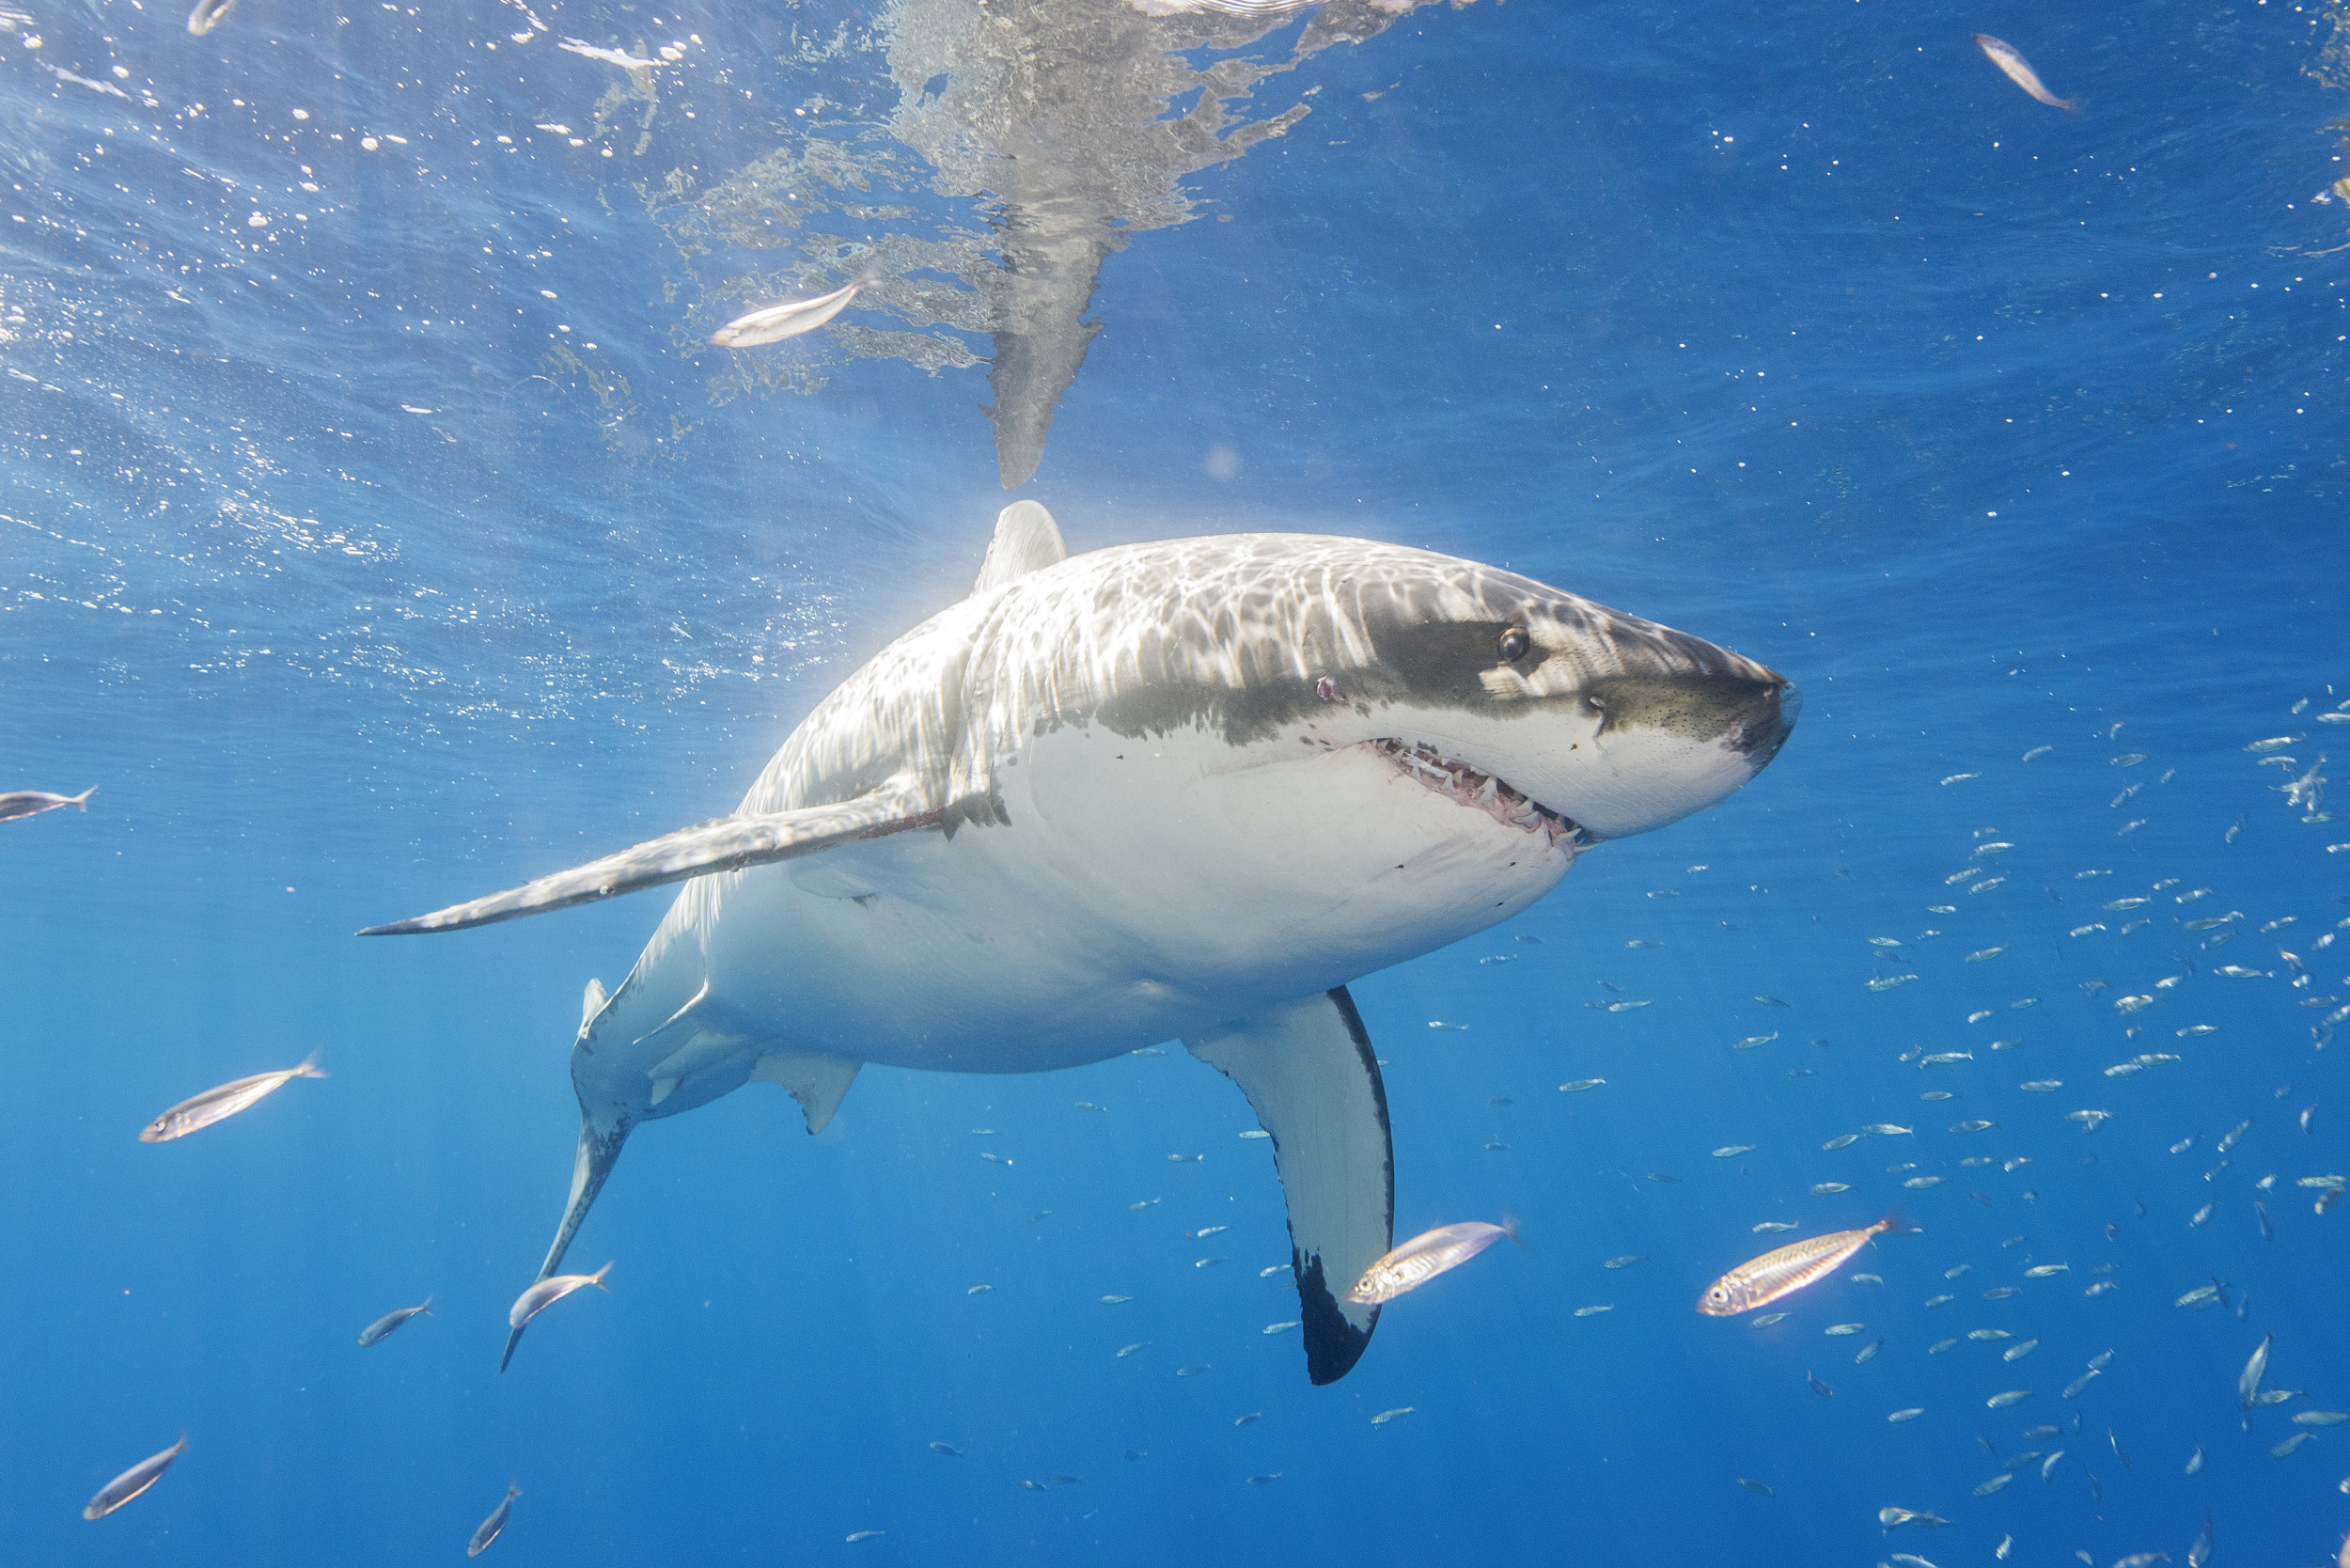 A 533-POUND GREAT WHITE SHARK HAS BEEN TRACKED SWIMMING INLAND ON THE NORTH CAROLINA COAST